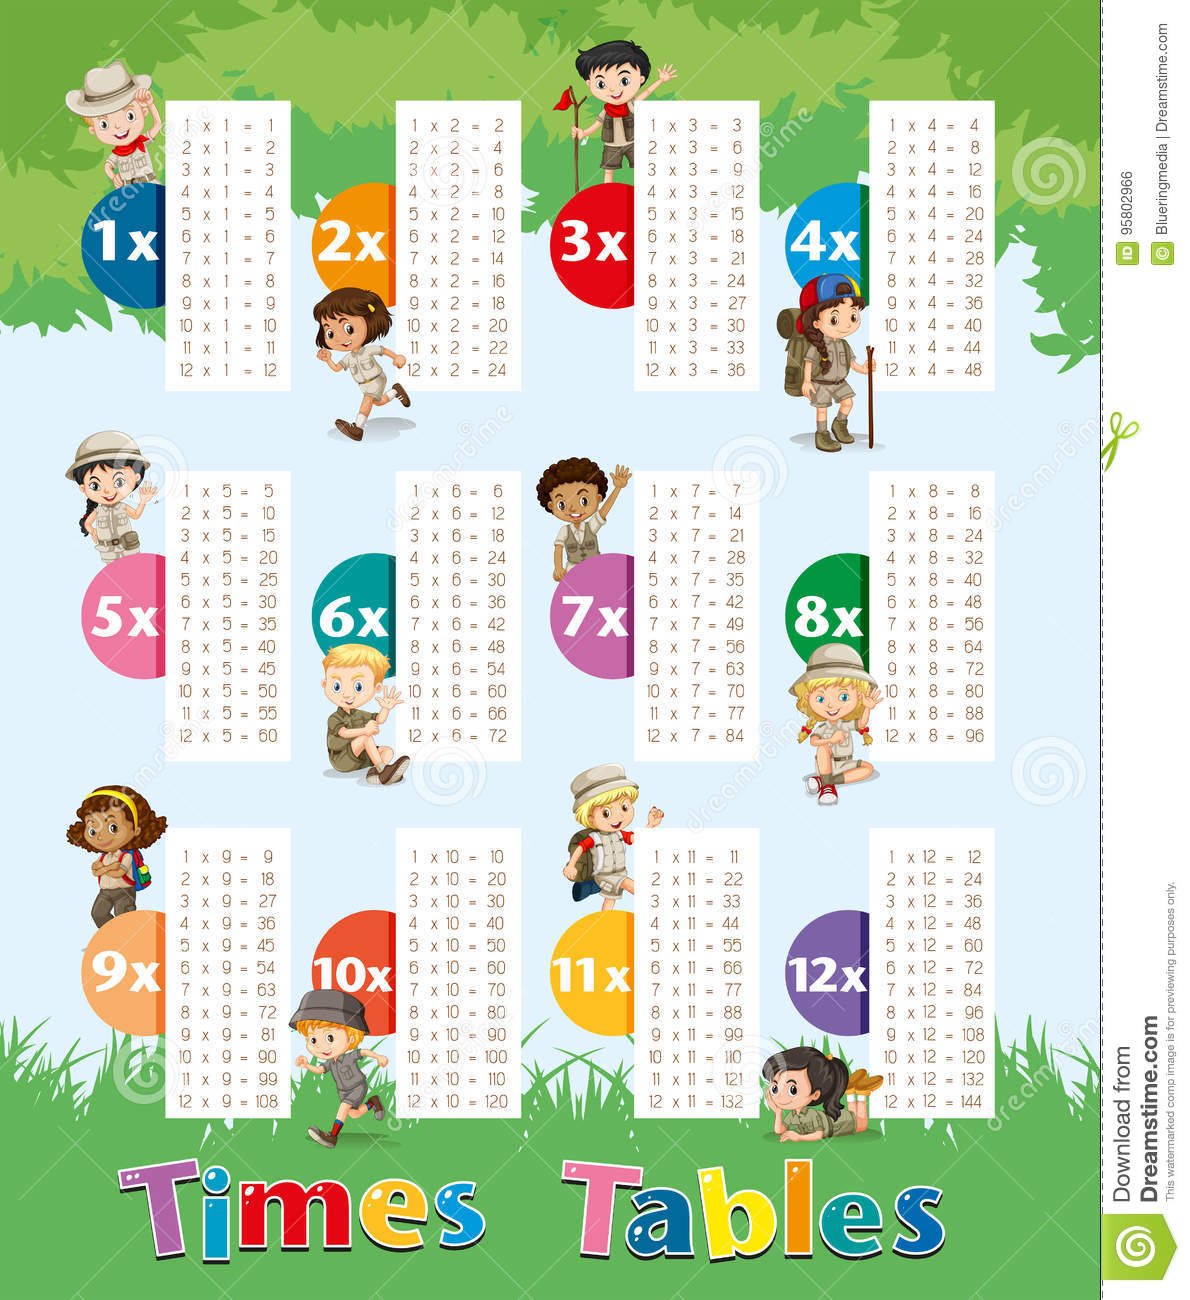 Times Tables Chart With Kids In Park Stock Vector